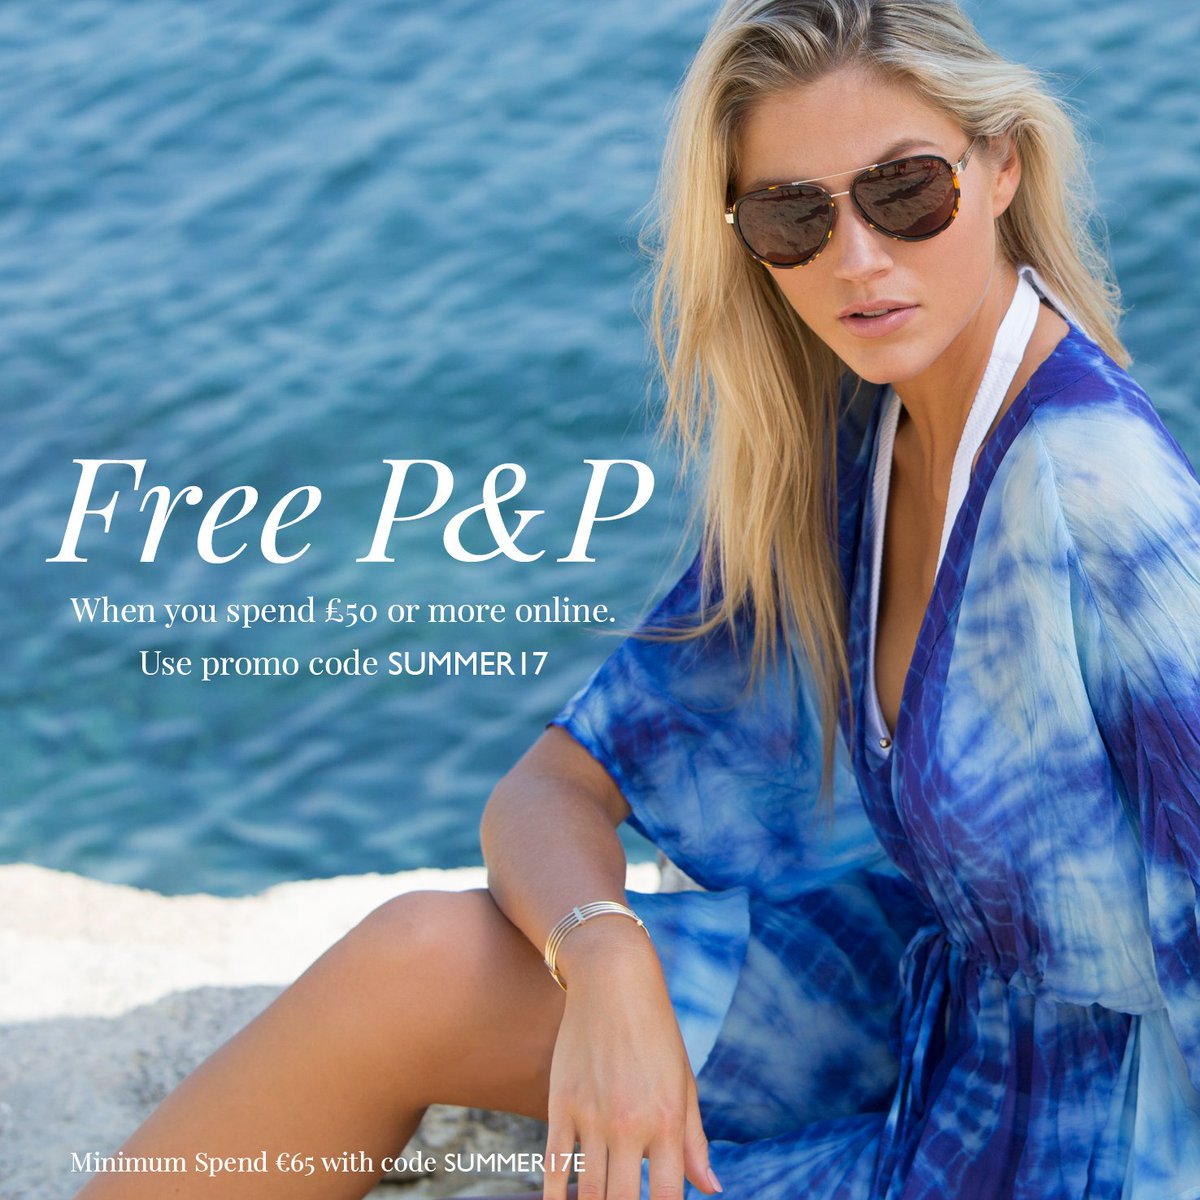 Don&#39;t forget to add free P&amp;P to your online order this week. Get the details at  https://www. eyespace-eyewear.co.uk  &nbsp;   #Eyespace #Eyewear #Glasses #Vision<br>http://pic.twitter.com/DrJ68mhM4R